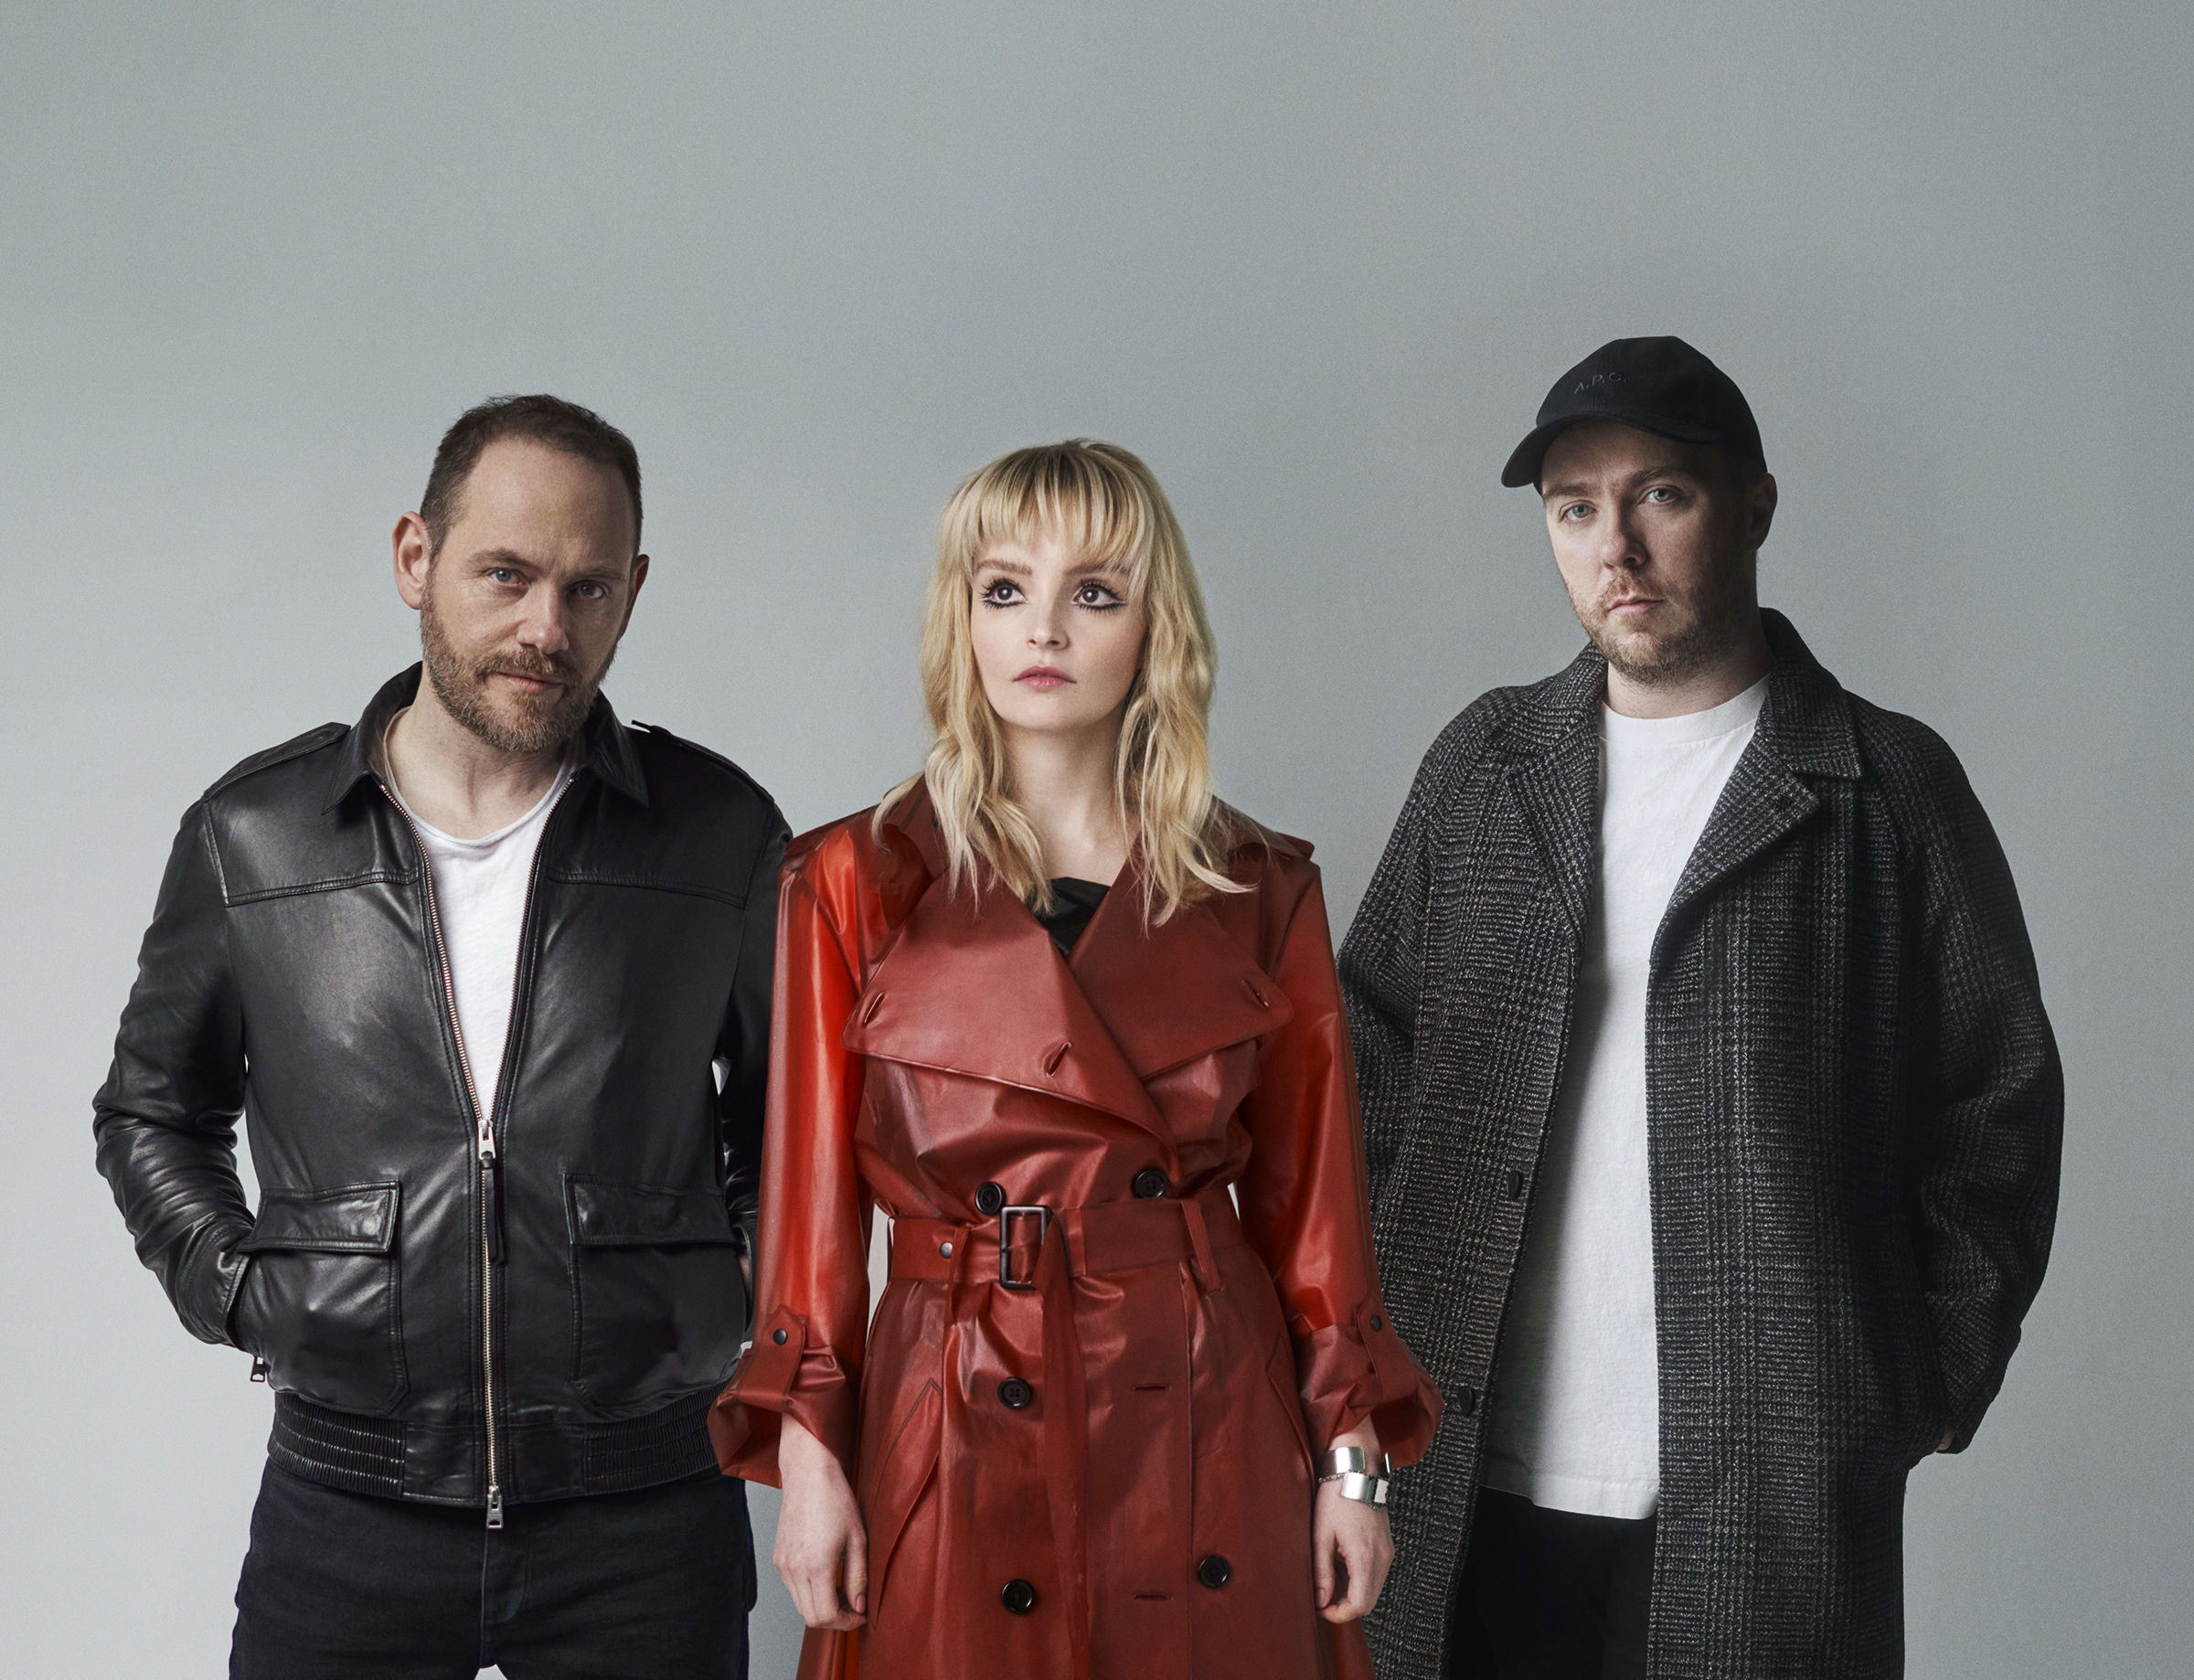 CHVRCHES release their long-awaited new single 'He Said She Said' - Listen Now!